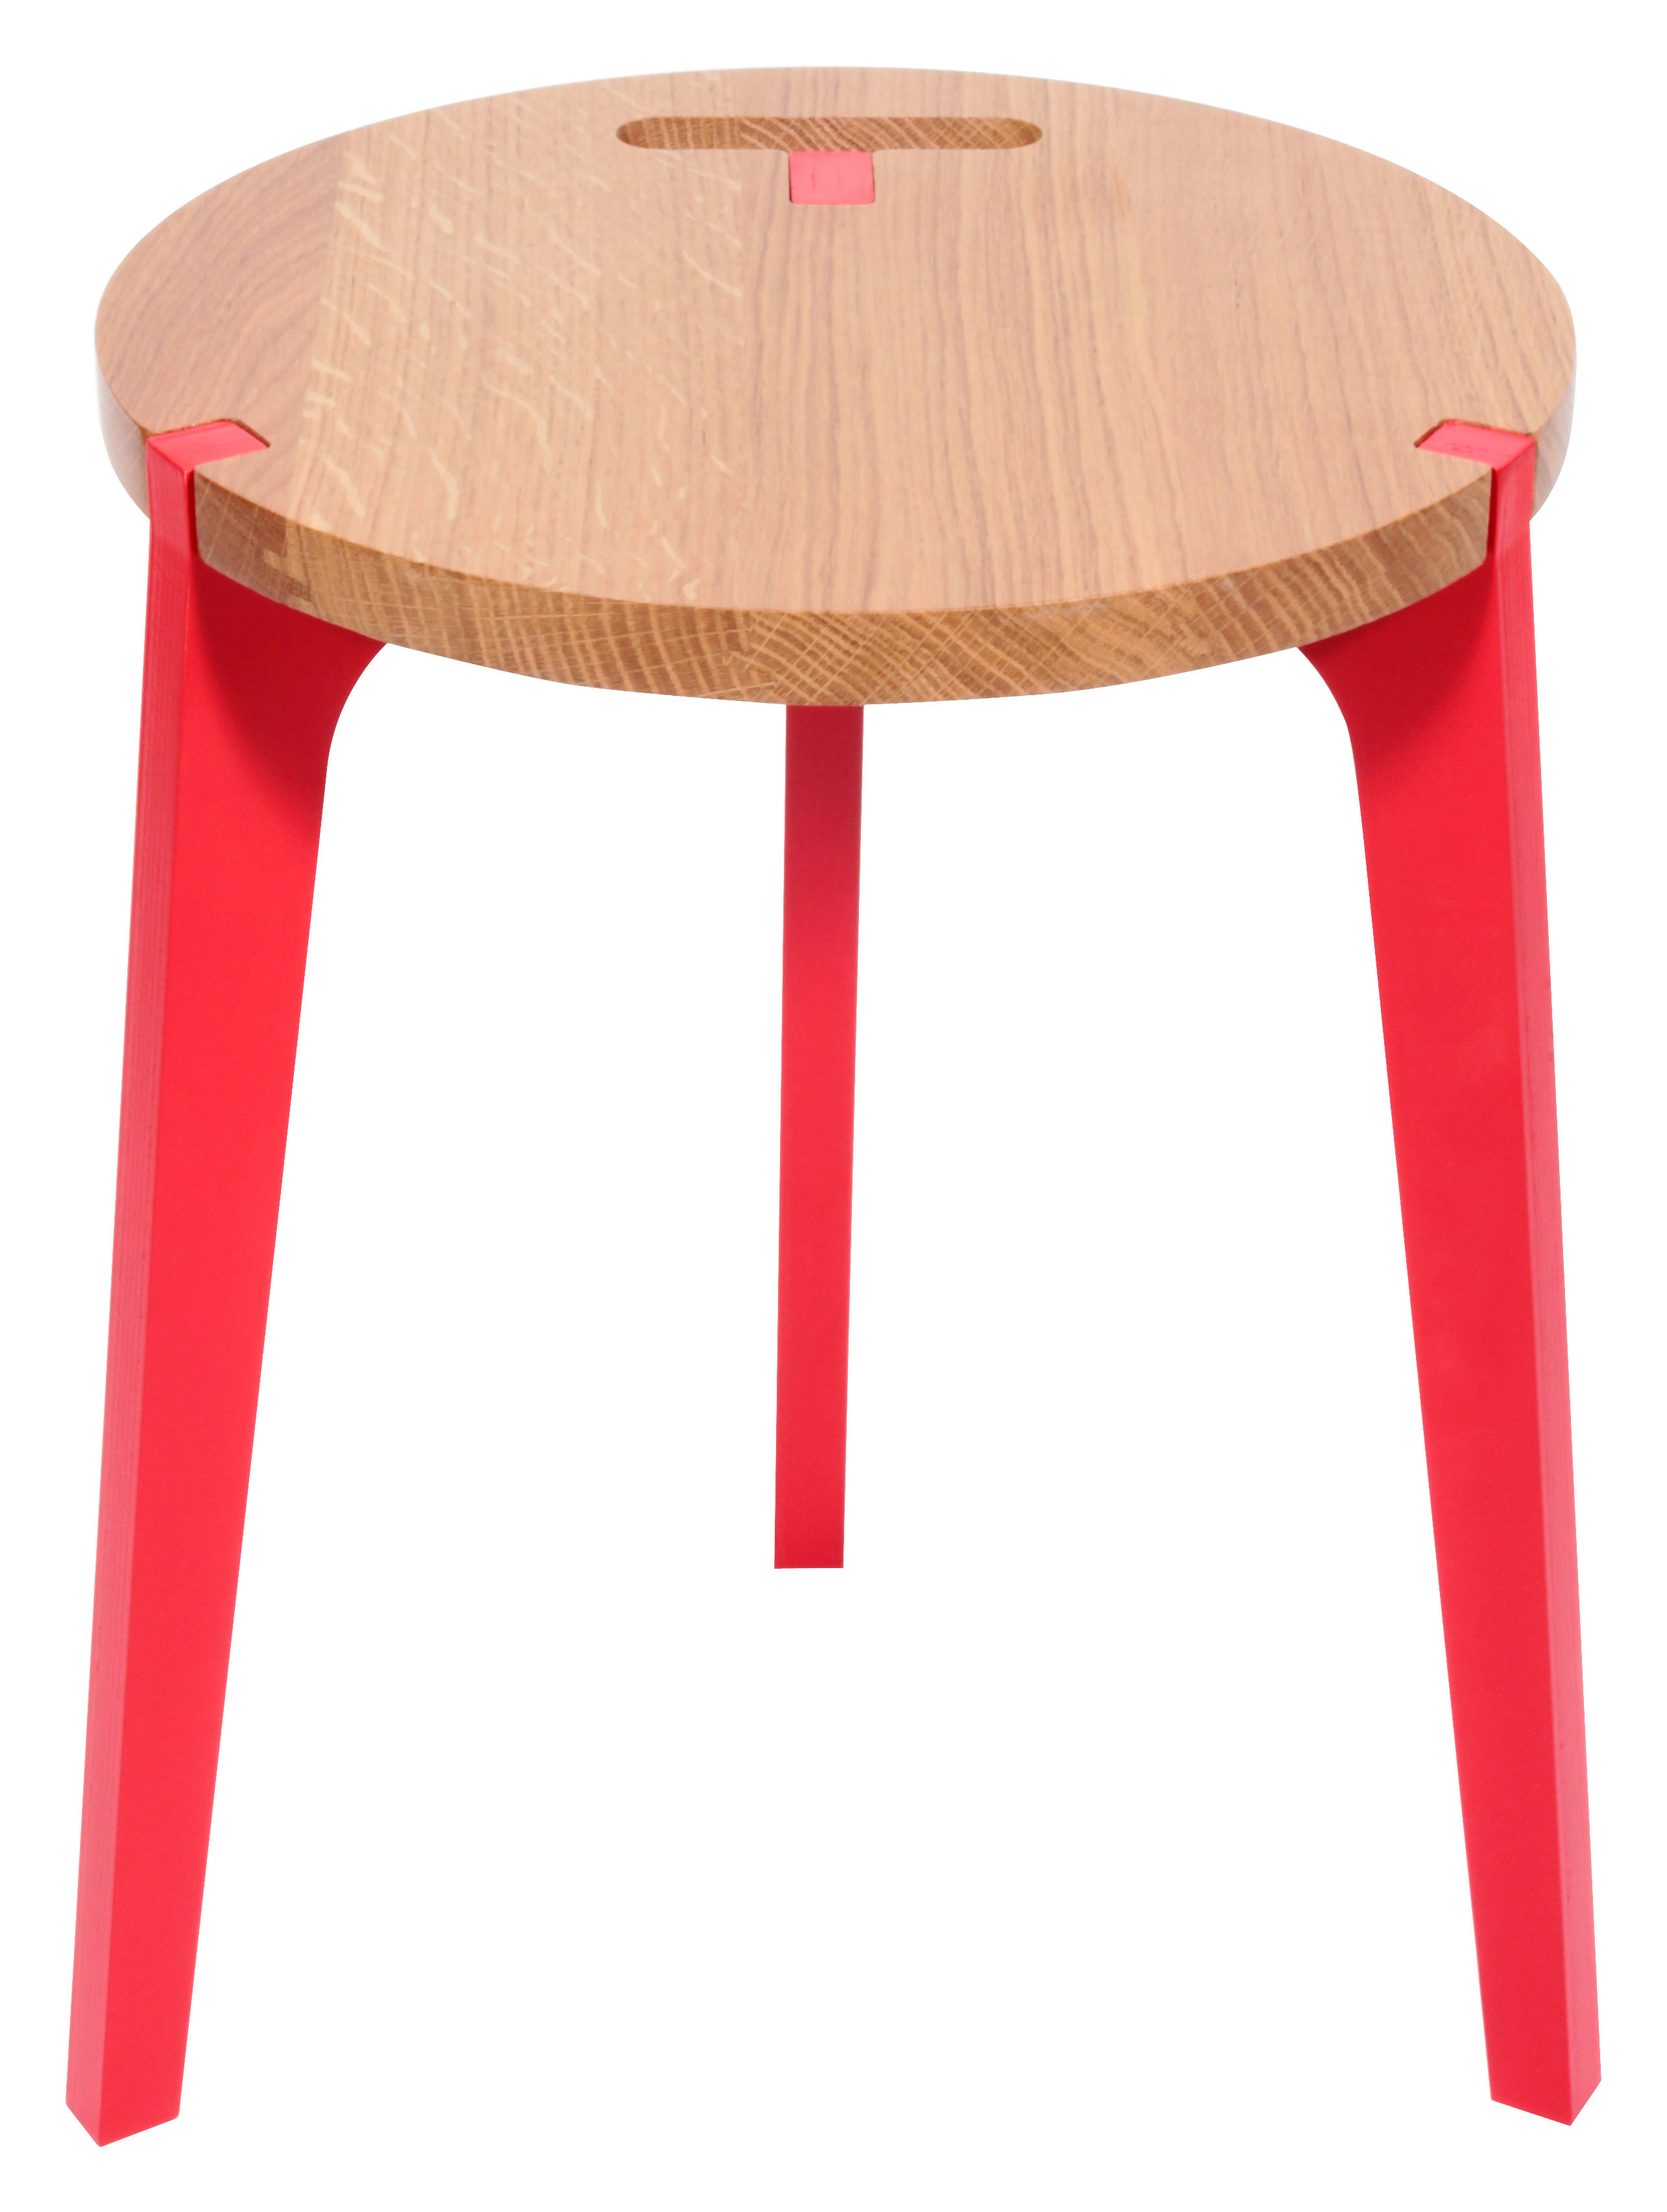 Furniture - Stools - Canne Stool by La Corbeille - Natural oak - Red - Natural oak